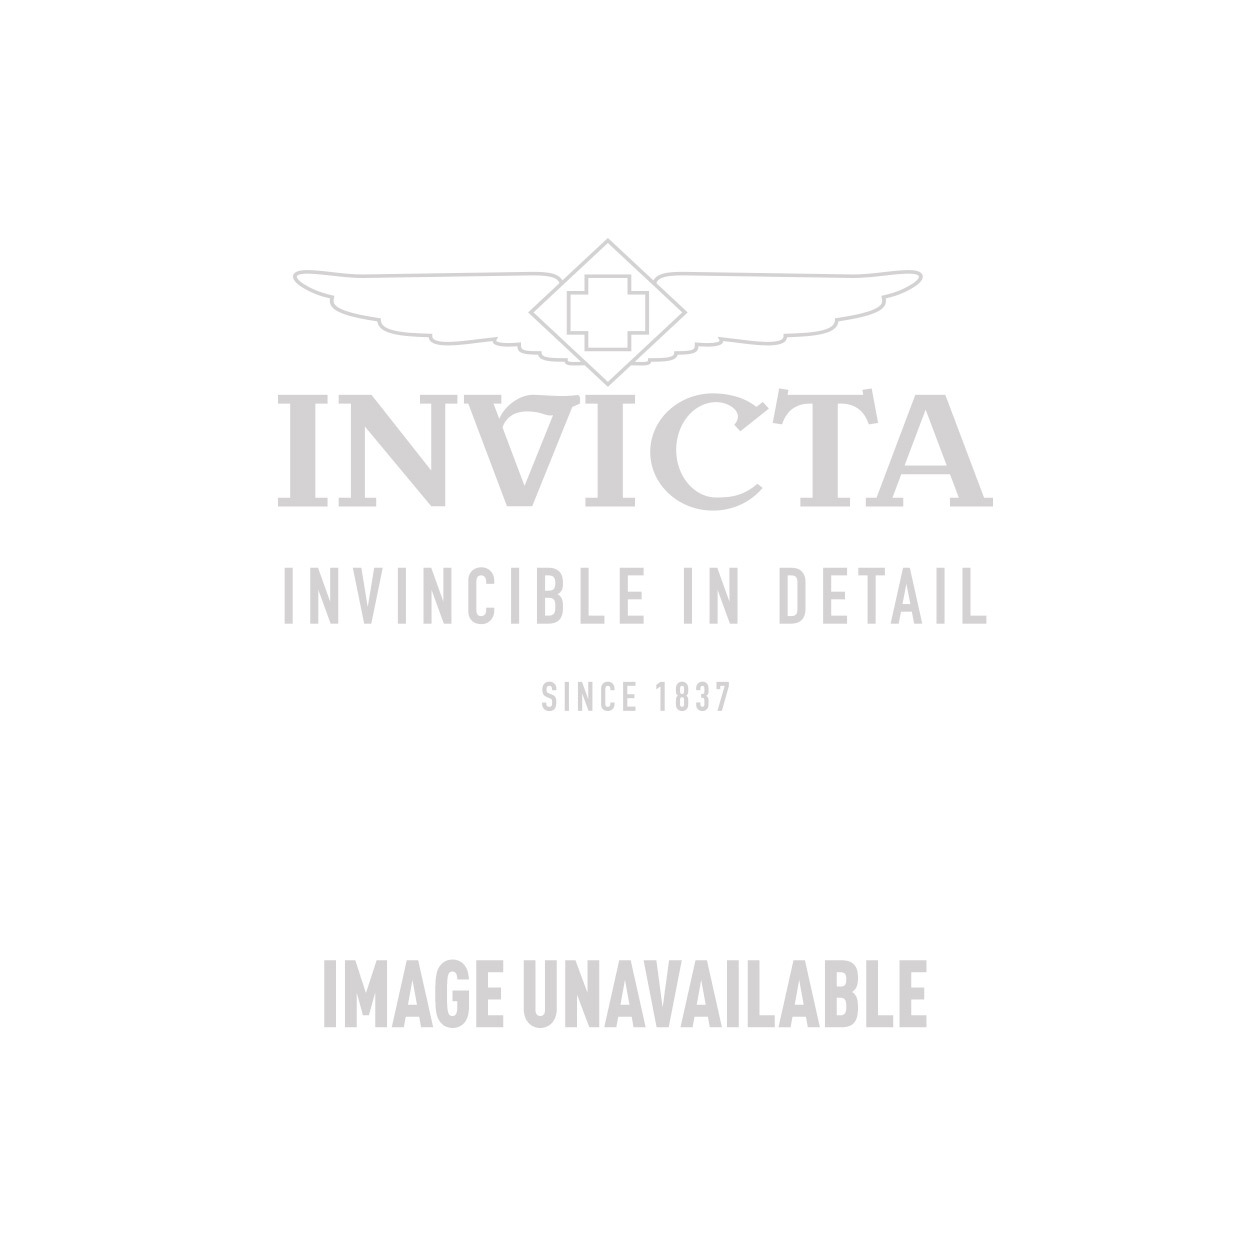 Invicta Specialty Quartz Watch - Rose Gold, Stainless Steel case with Steel, Rose Gold tone Stainless Steel band - Model 21442